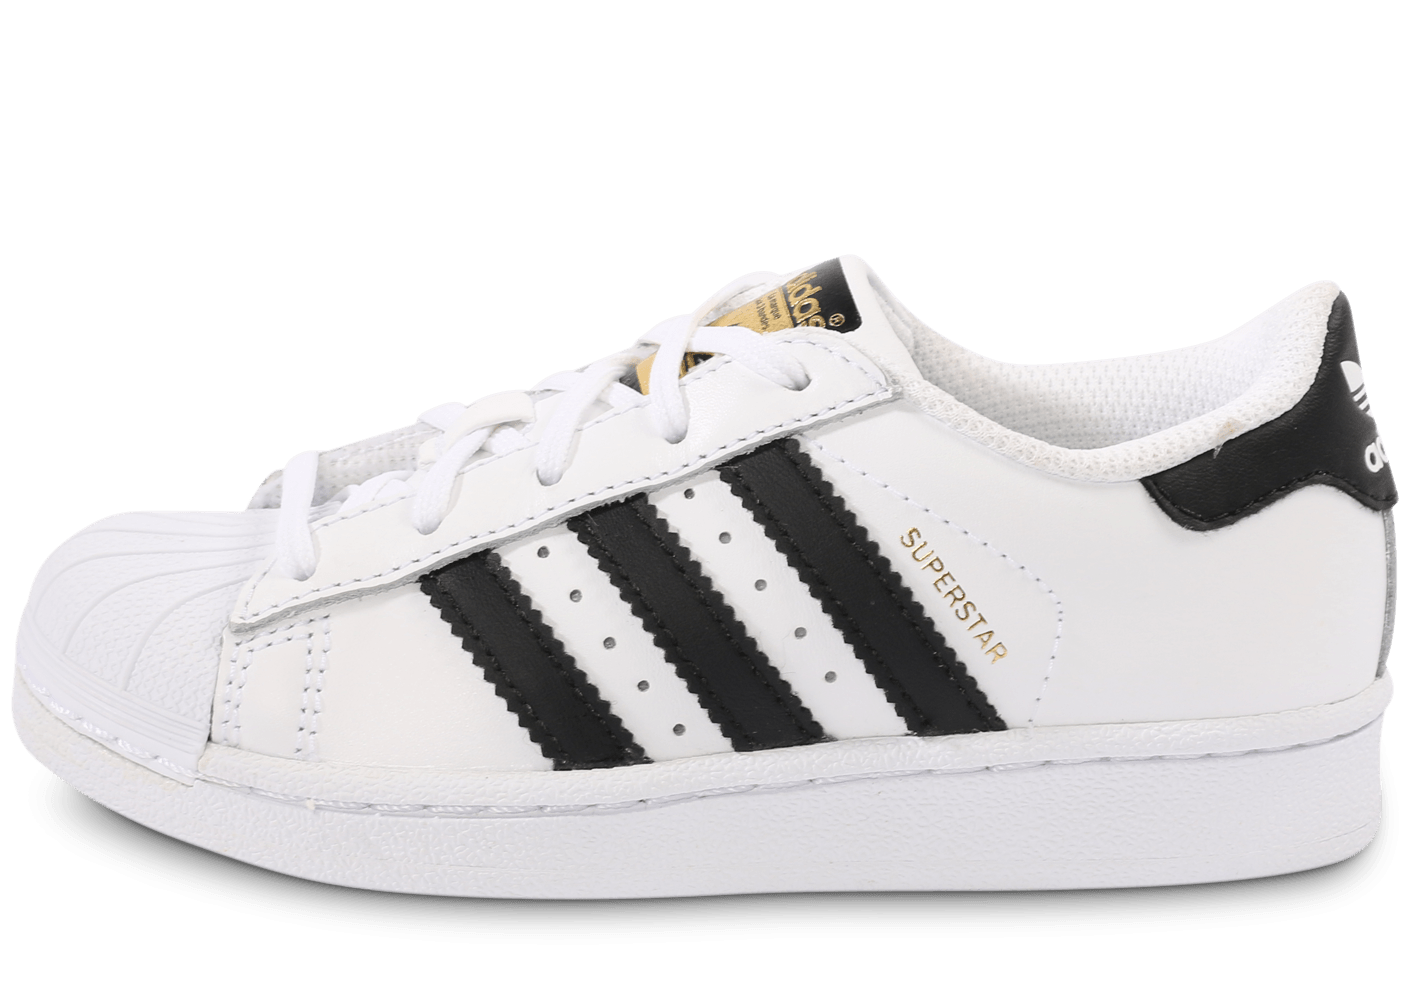 adidas superstar foundation noir et blanc enfant chaussures adidas chausport. Black Bedroom Furniture Sets. Home Design Ideas